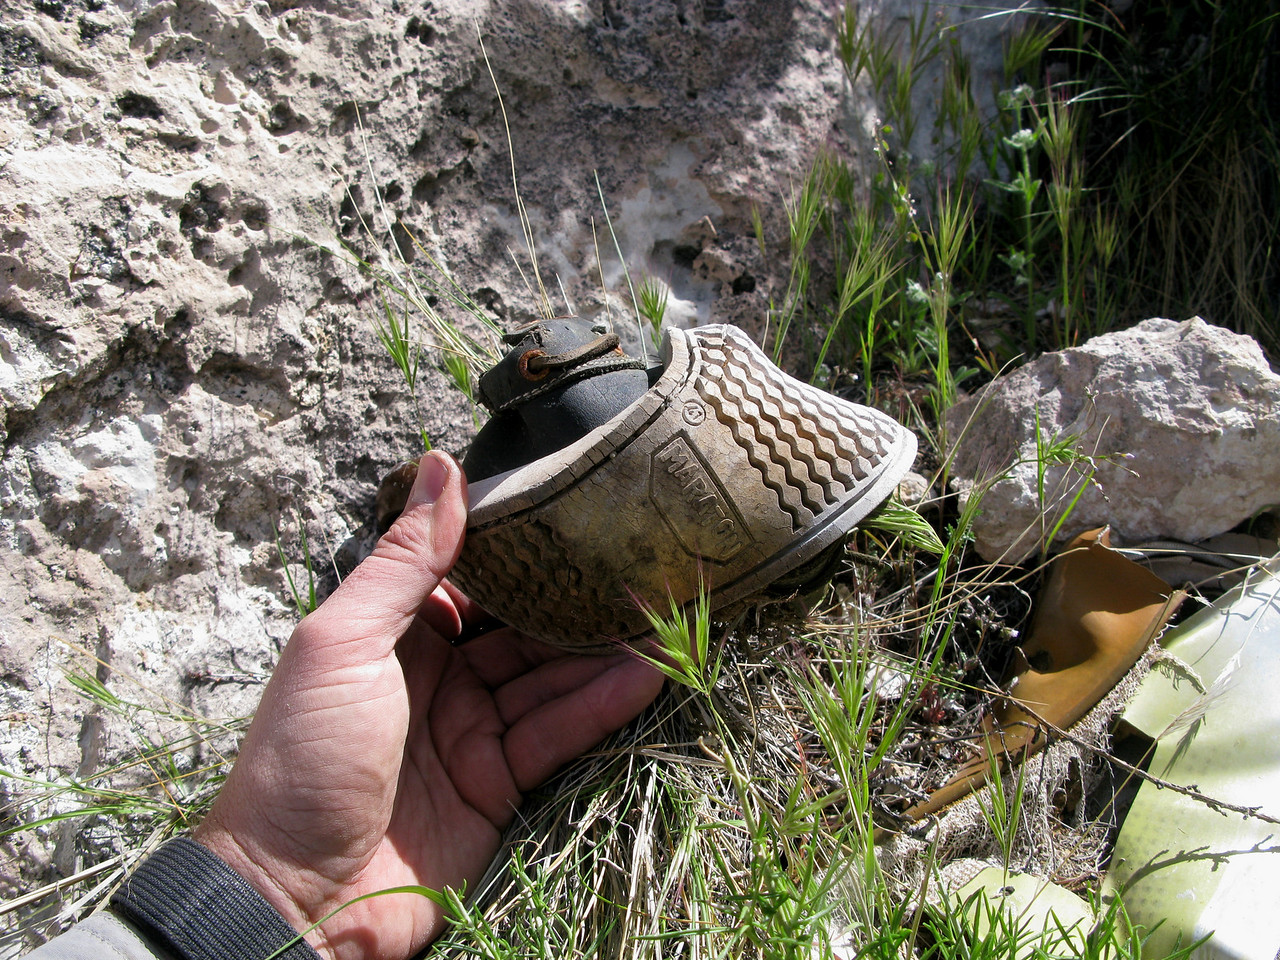 In addition to various articles of clothing scattered at the crash site were the shoes of the accident victims.<br /> <br /> This tennis shoe, manufactured by Maraton shows the European shoe sizing of 47 on the sole.